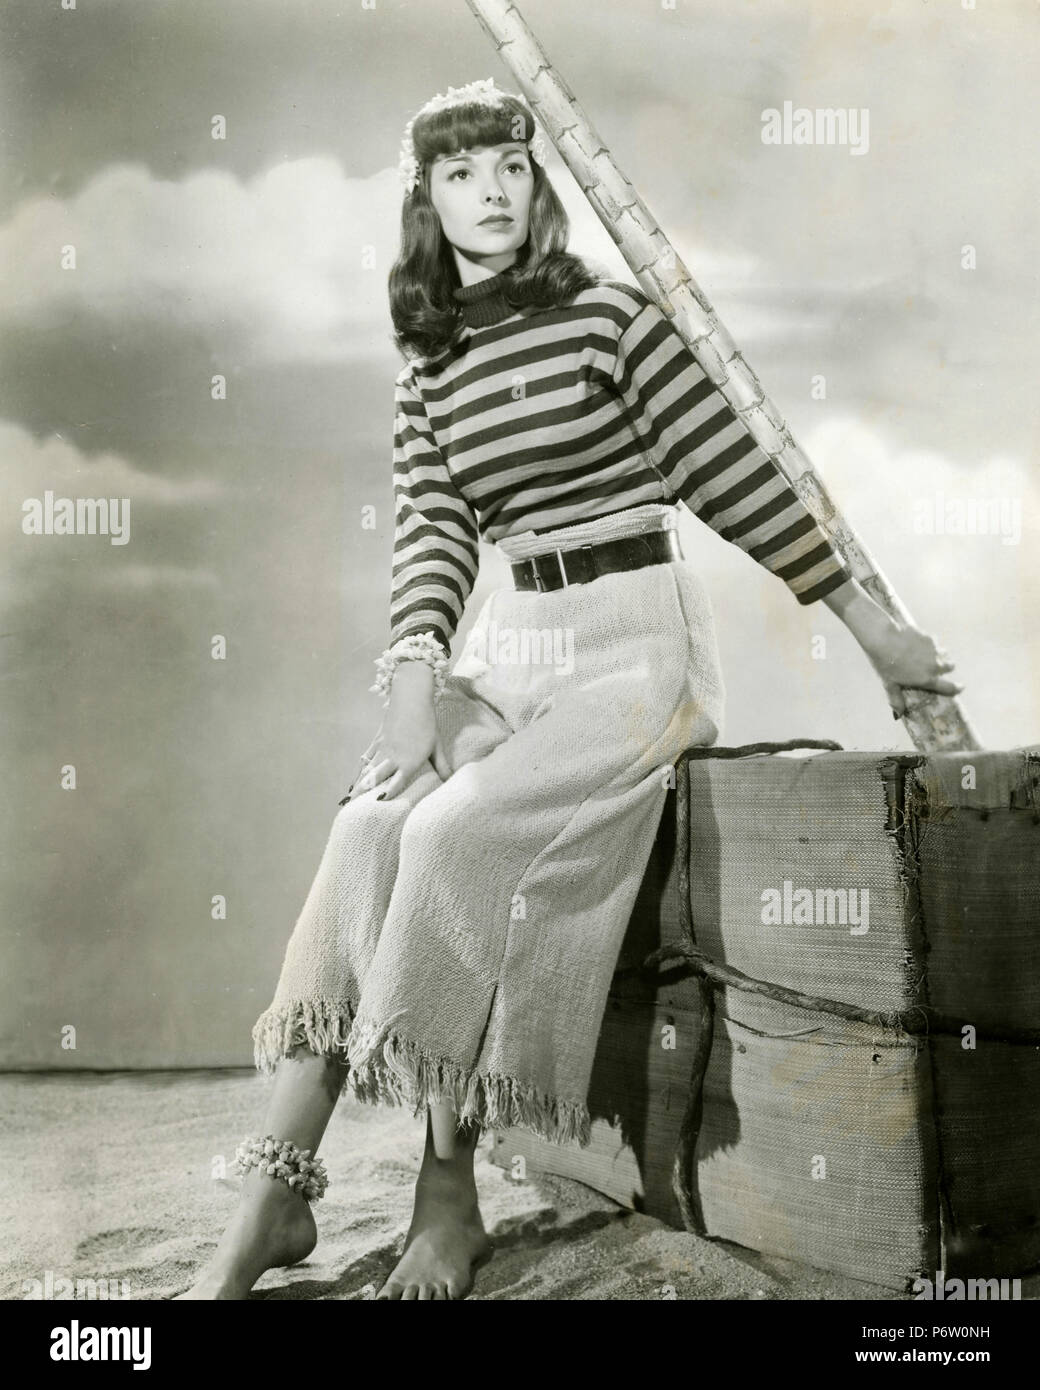 Actress Frances Ramsden, 1940s Stock Photo